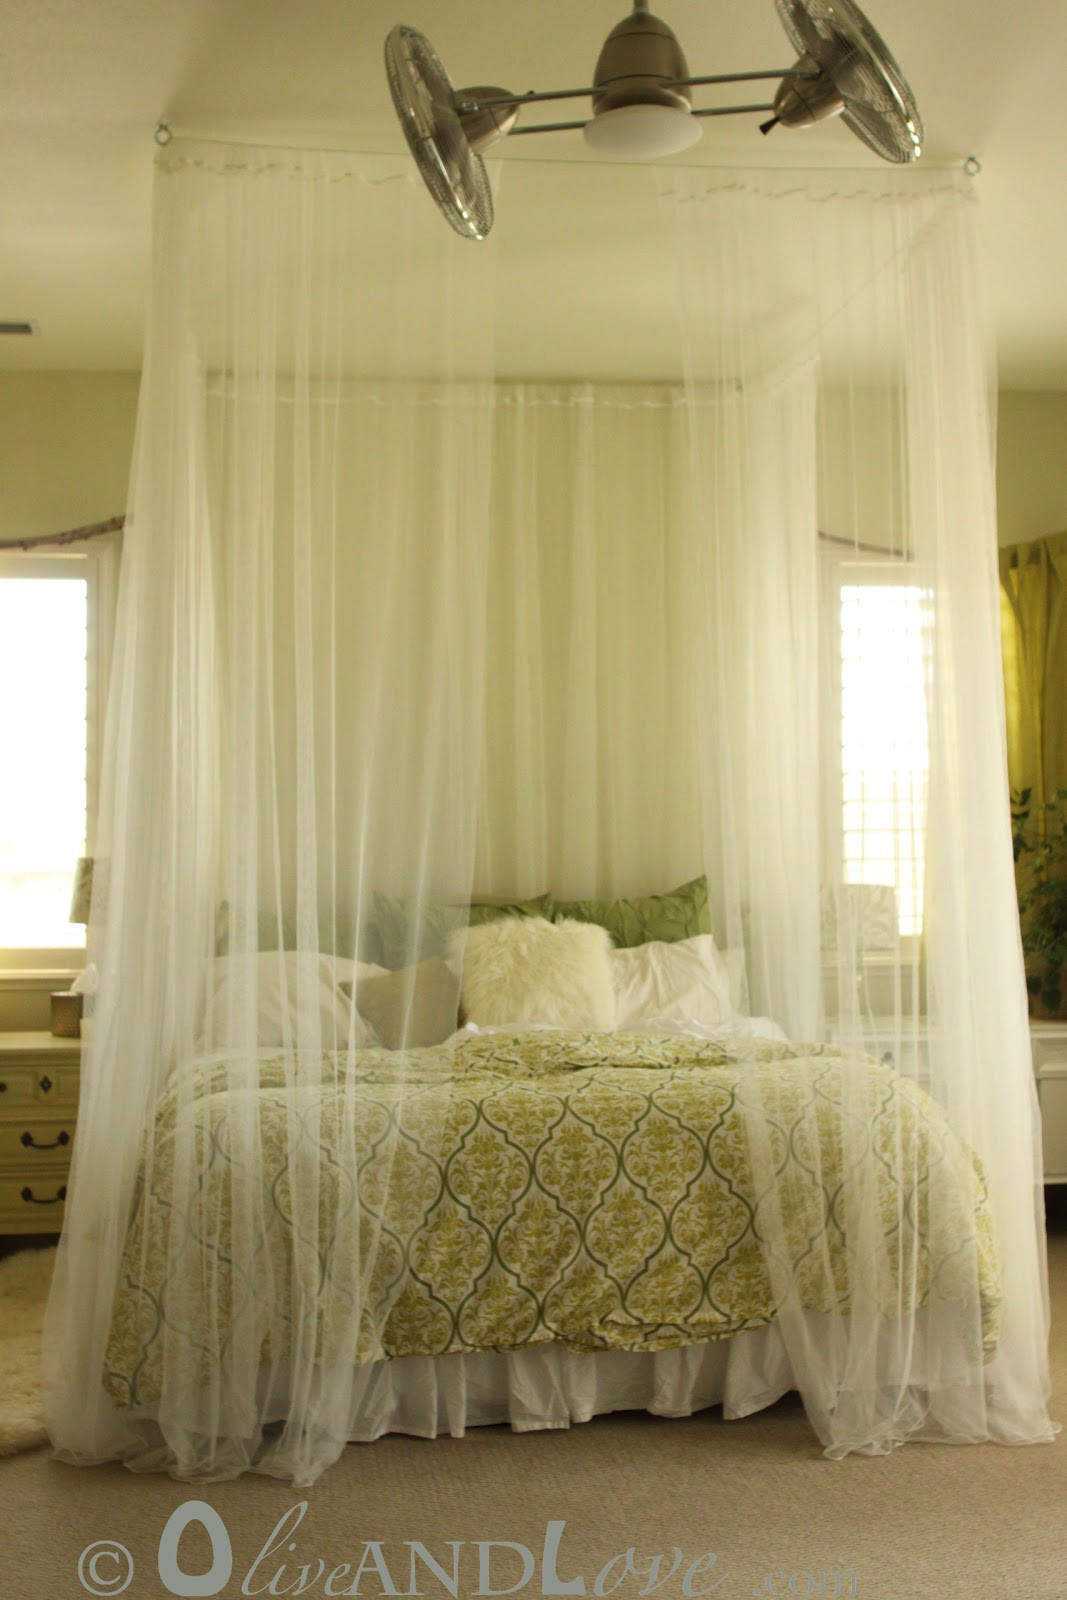 Best ideas about Bed Canopy DIY . Save or Pin Olive and Love Ceiling Mounted Bed Canopy Now.